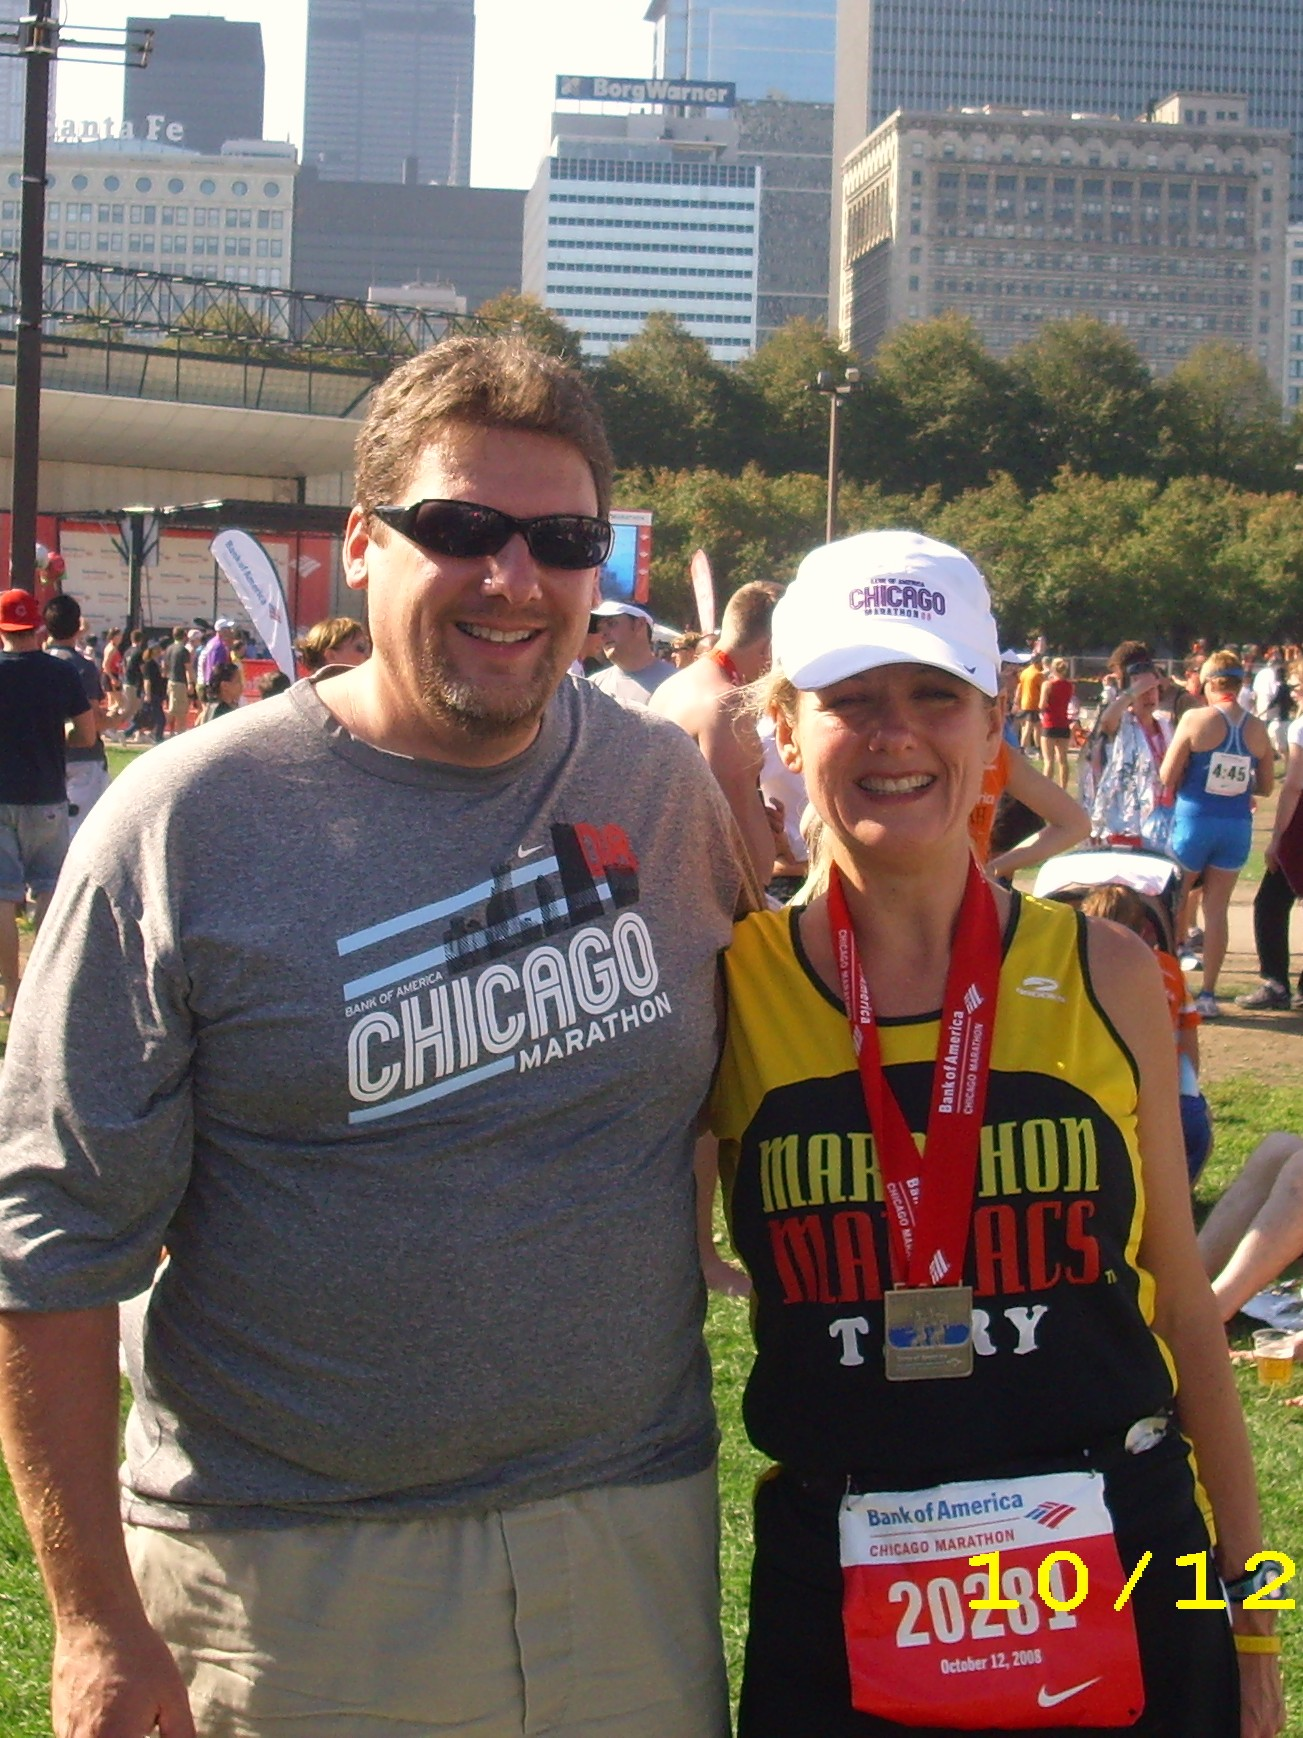 Roy and I after Chicago Marathon